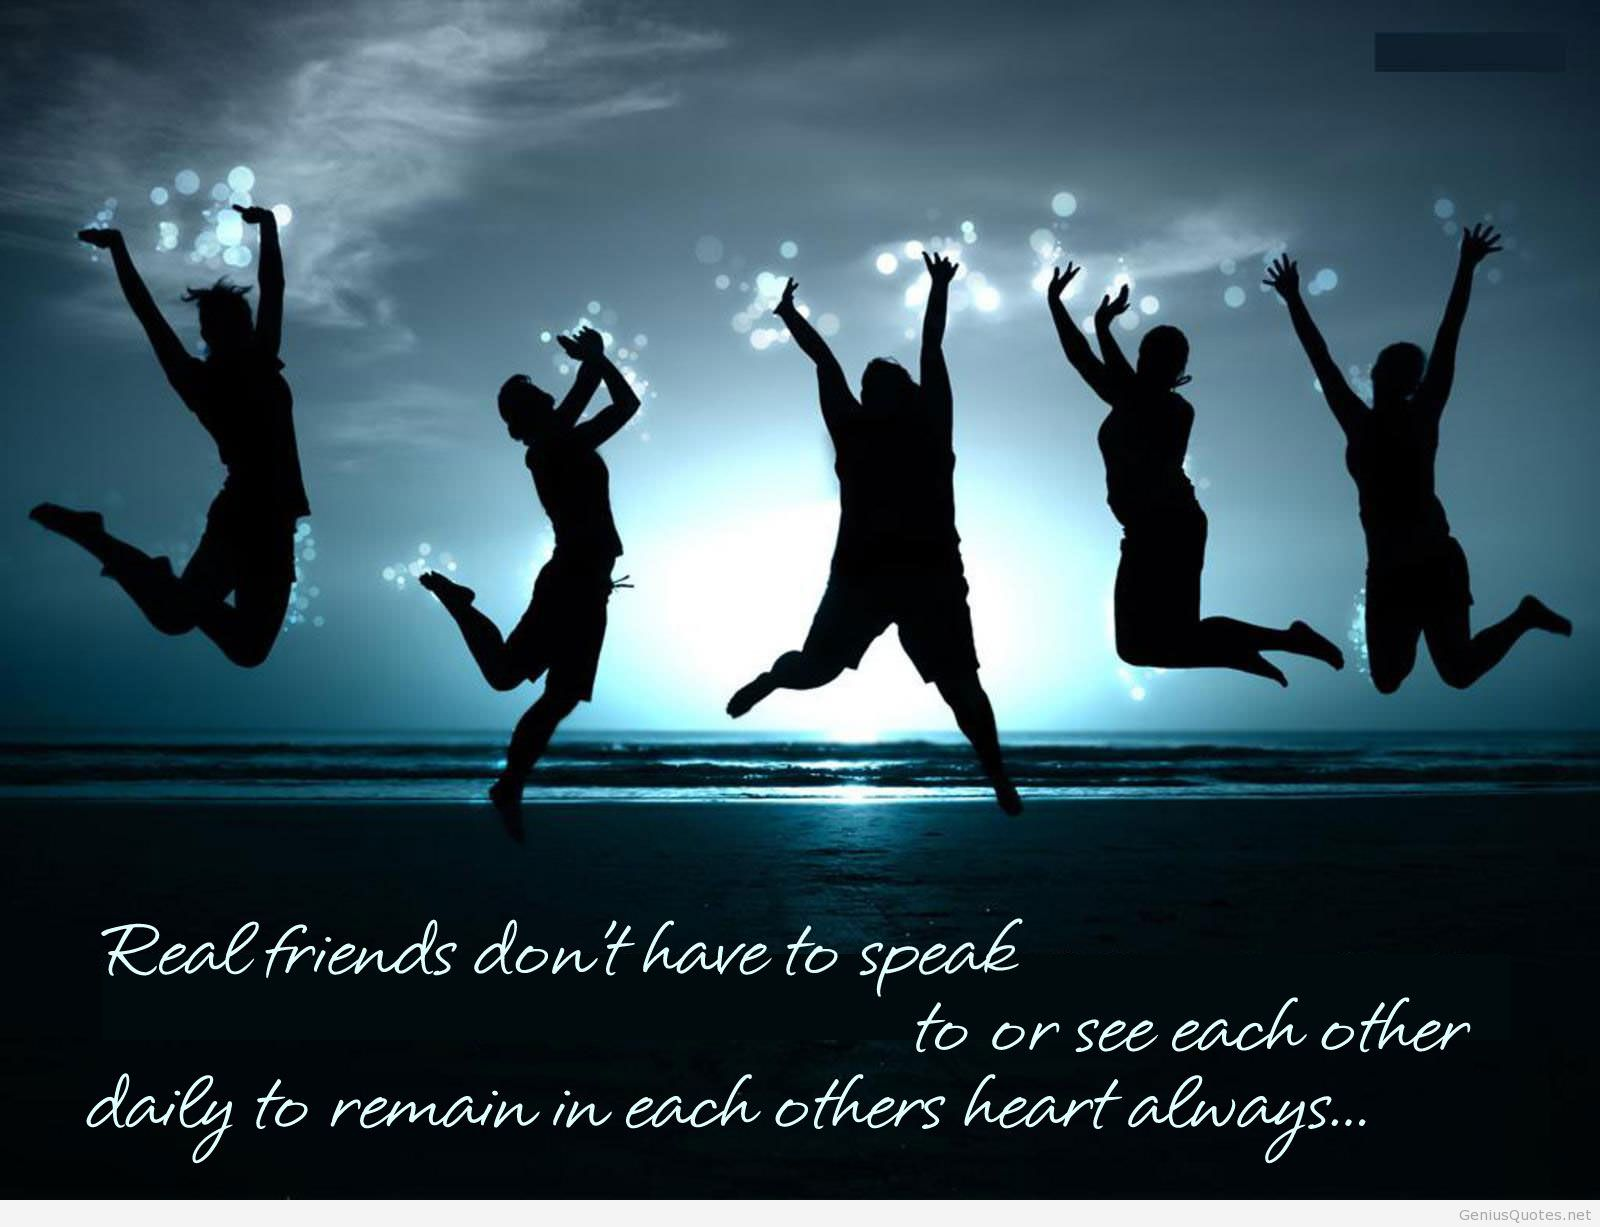 Friends quote image